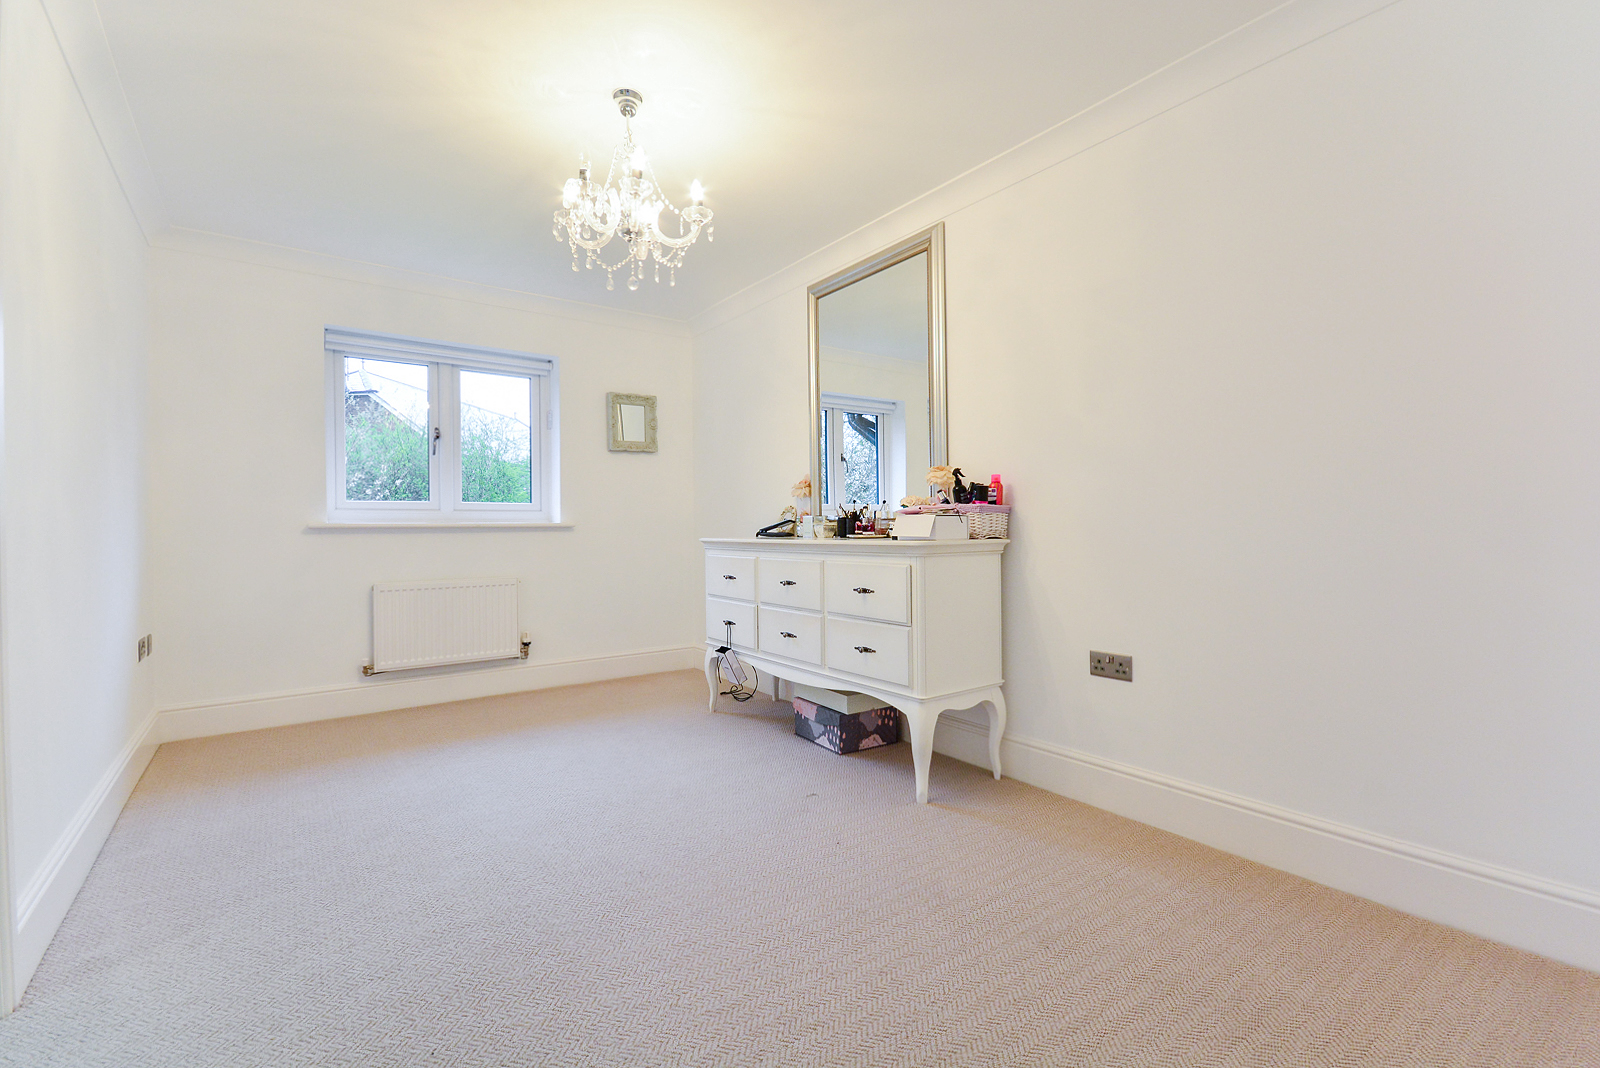 5 Bedroom House For Sale In Warrington